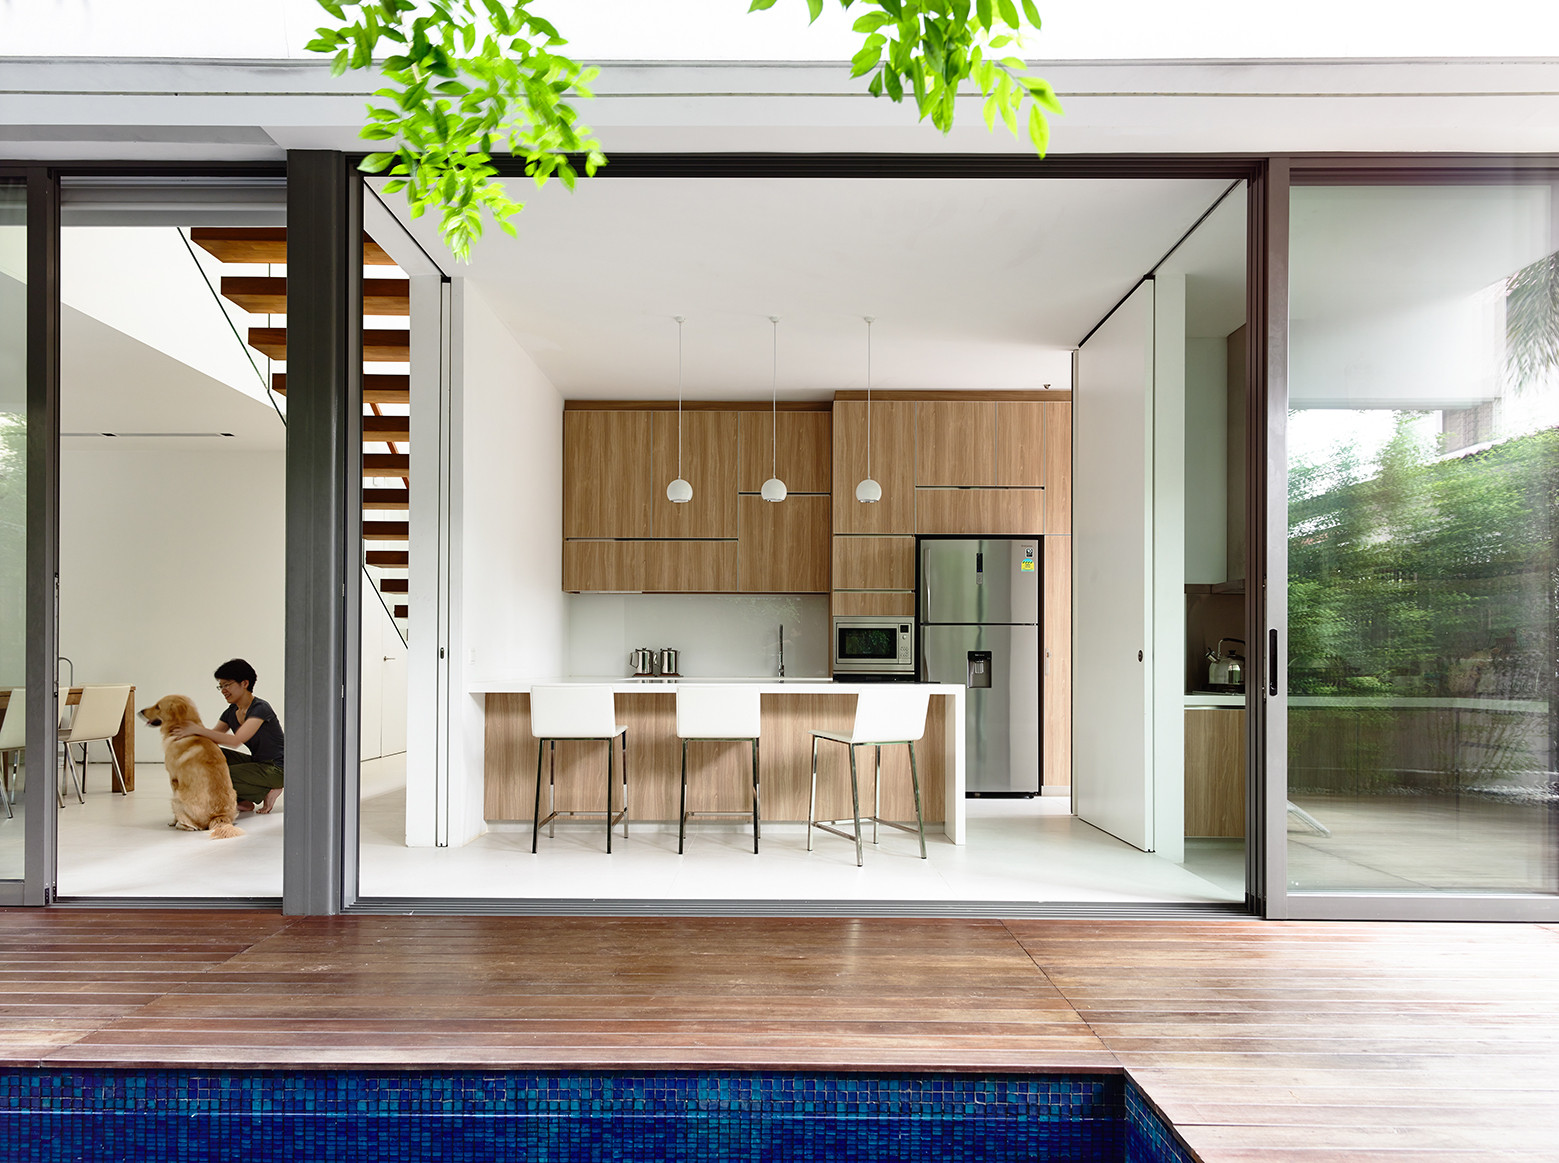 Eng Kong Garden Hyla Architects Archdaily